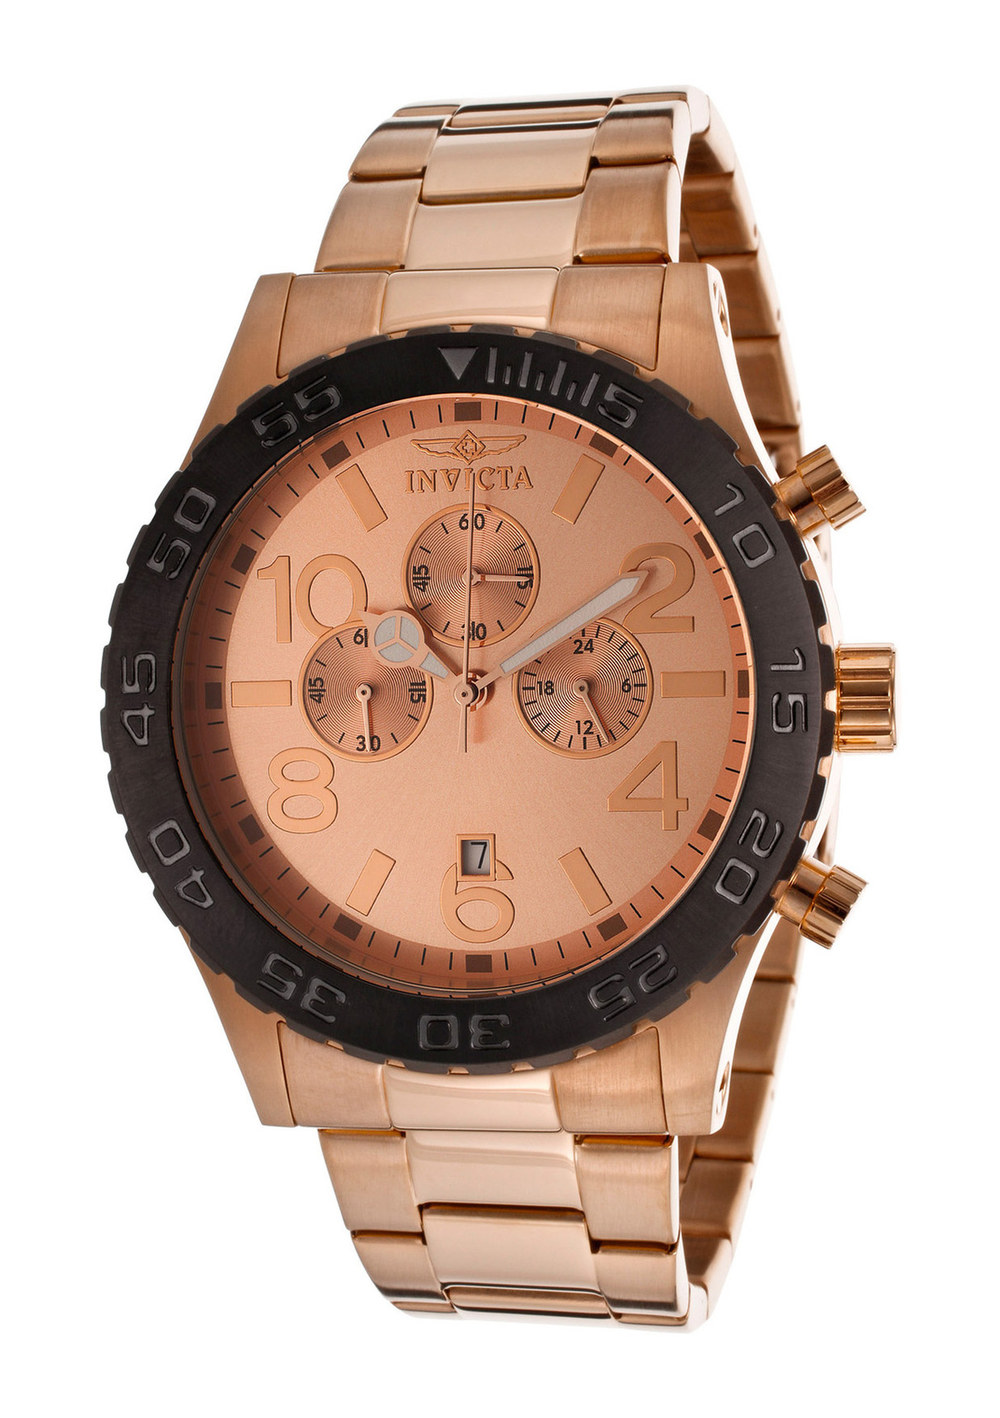 INVICTA Men's Specialty Chronograph Watch    was $595.00    NOW  $94.99